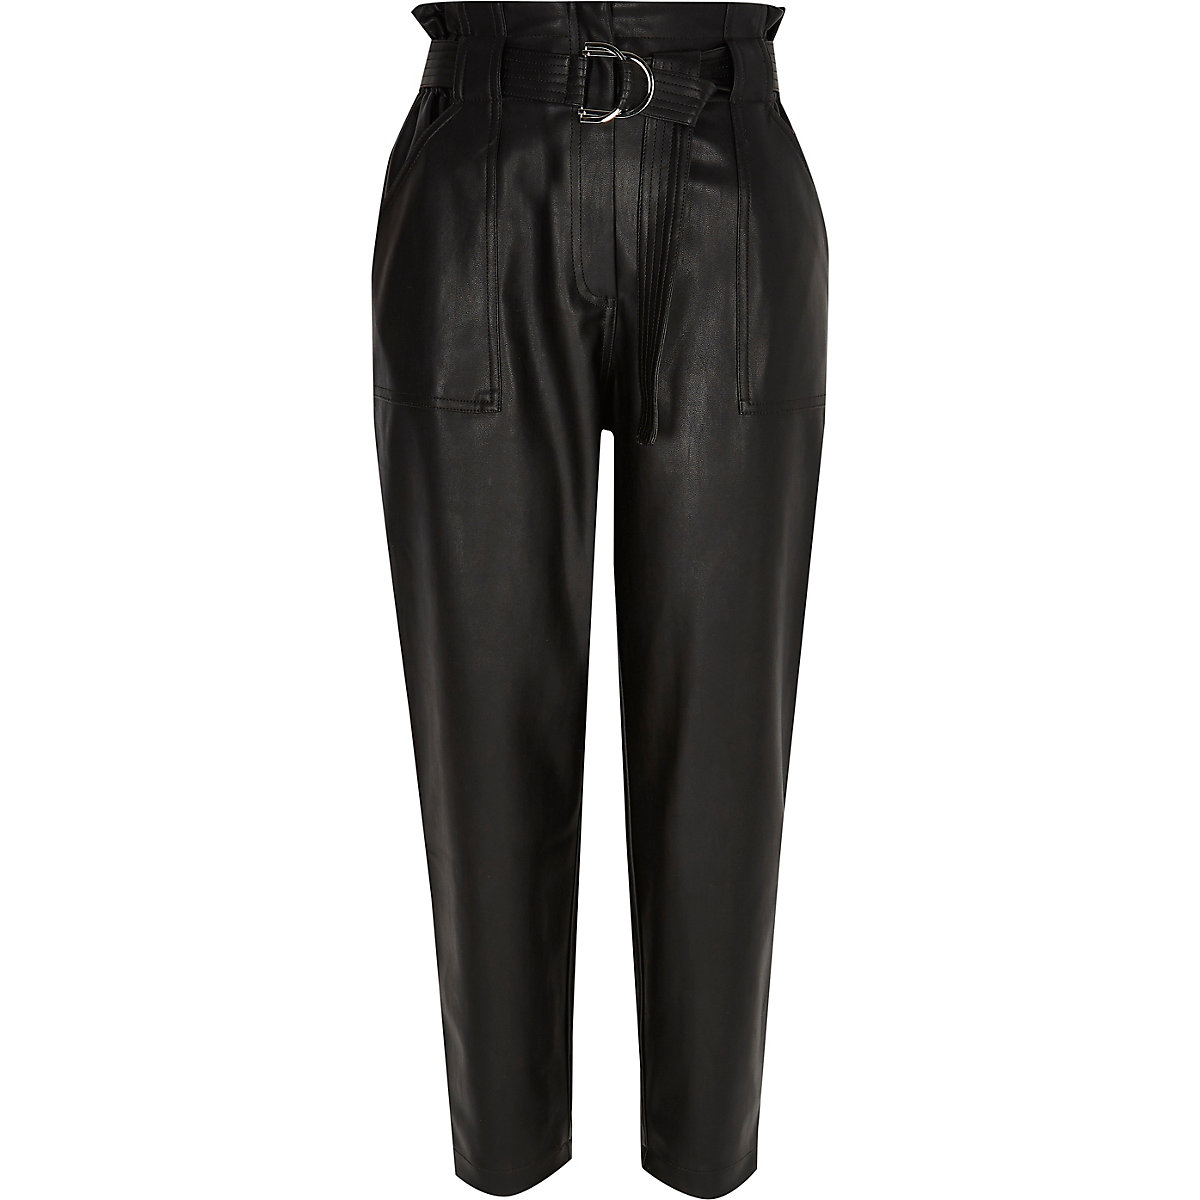 Petite black faux leather paperbag trousers